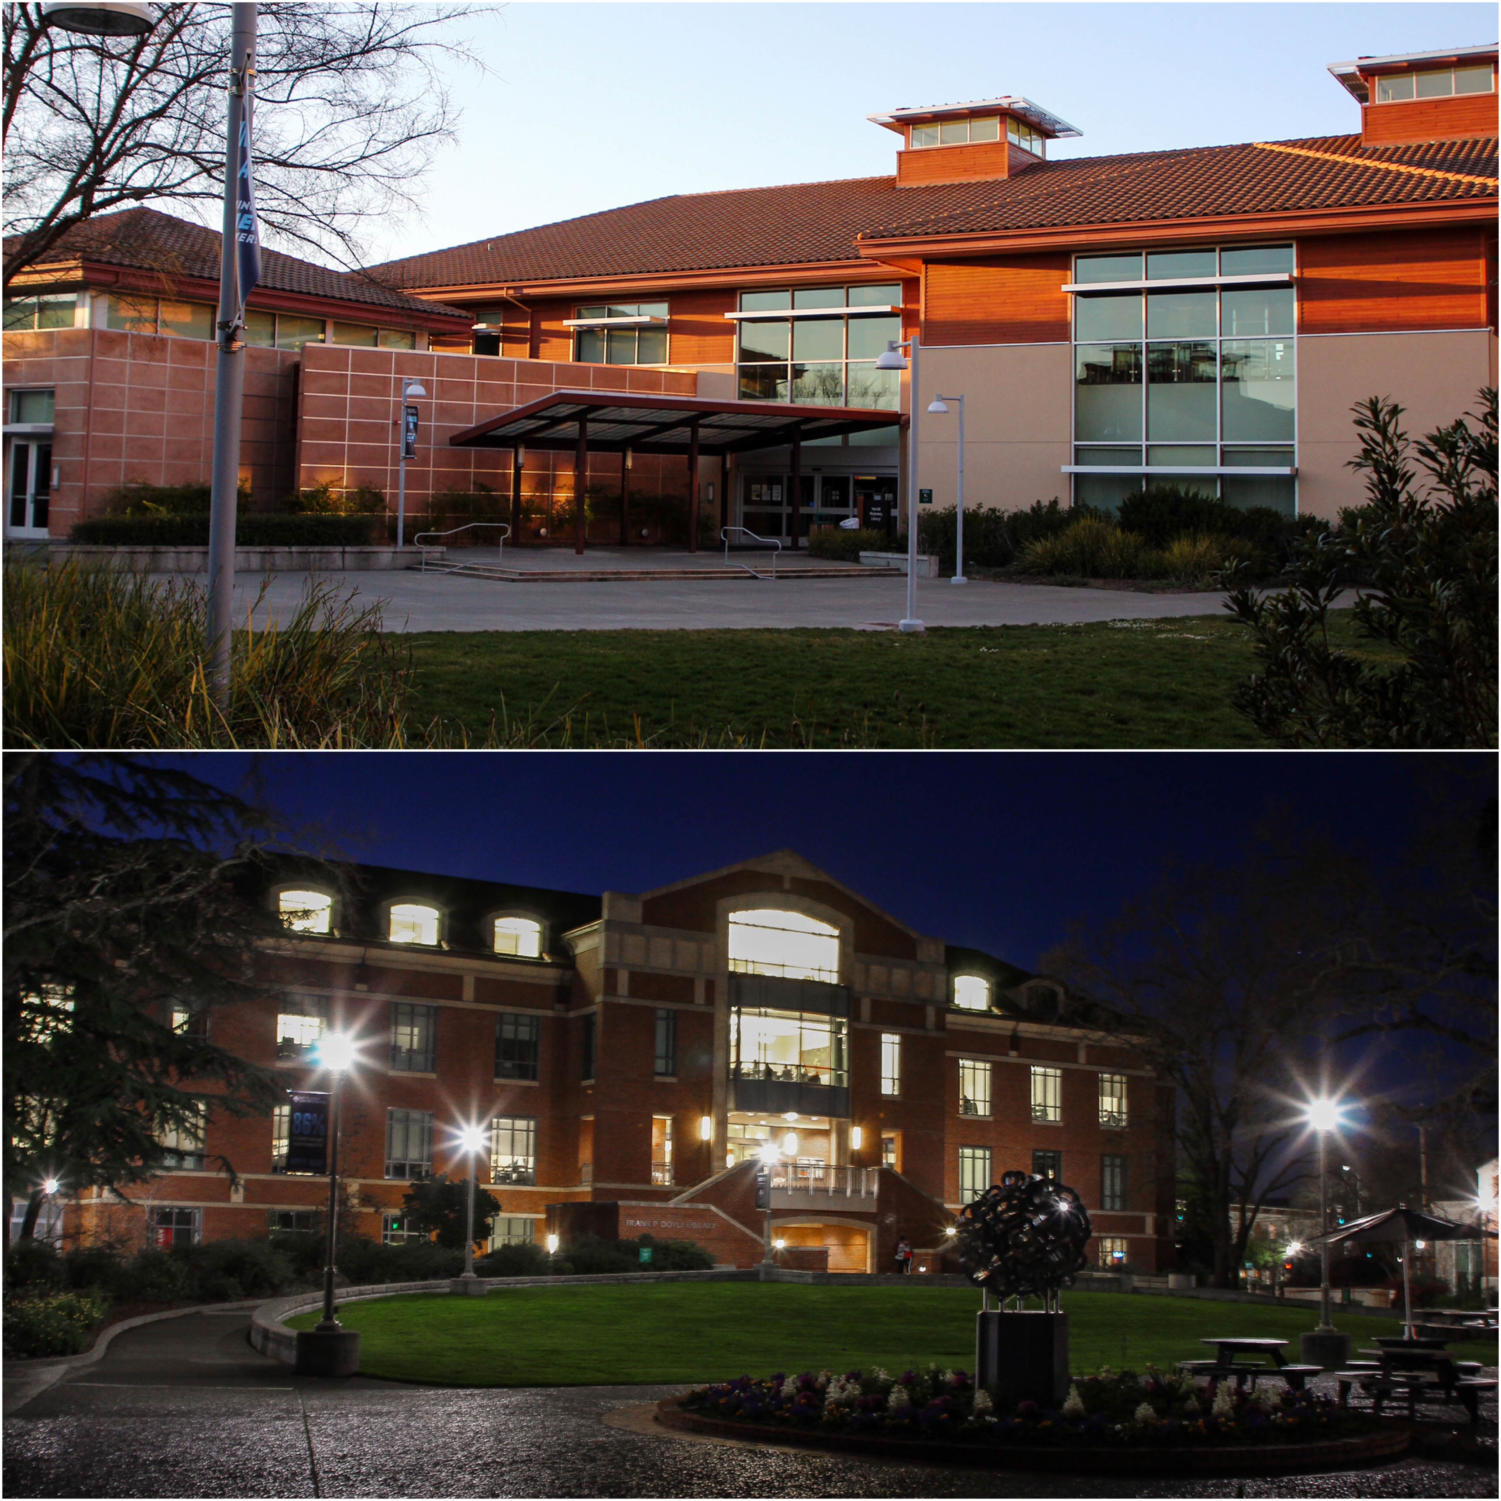 Mahoney (top) and Doyle (bottom) libraries are two buildings at Santa Rosa Junior College that offer student's individual and group work spaces.